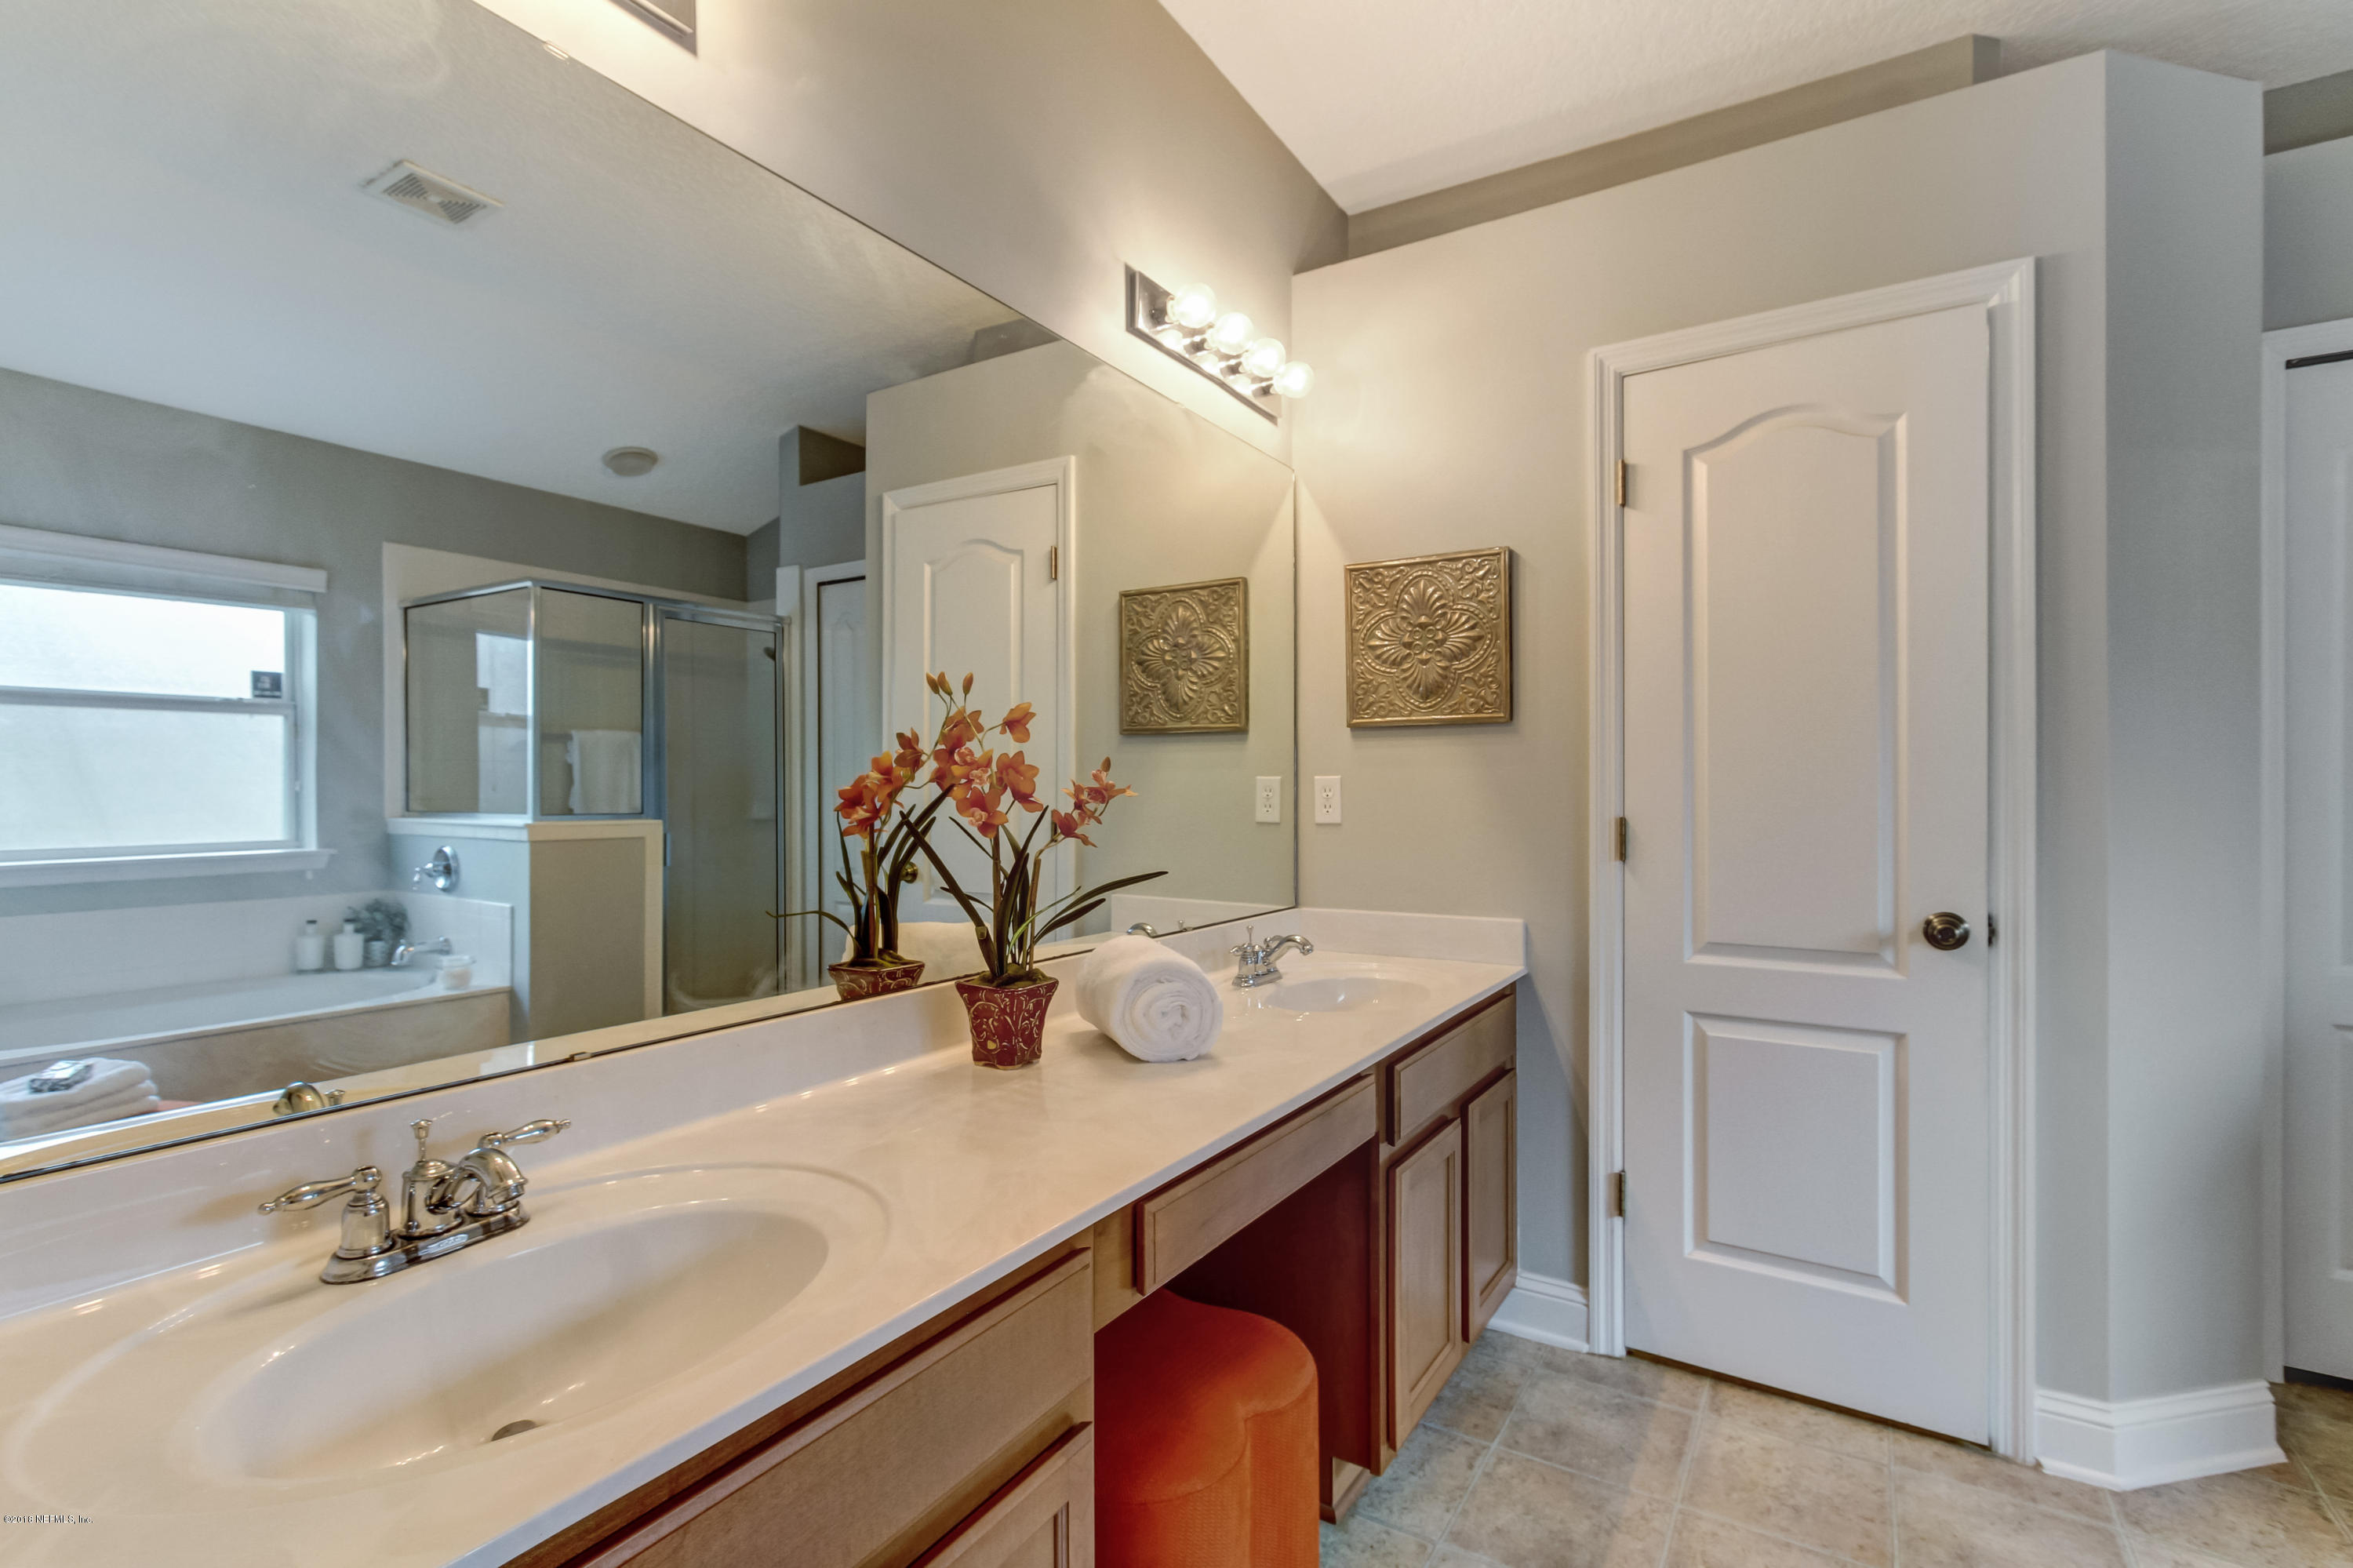 6663 CHESTER PARK, JACKSONVILLE, FLORIDA 32222, 3 Bedrooms Bedrooms, ,2 BathroomsBathrooms,Residential - single family,For sale,CHESTER PARK,953108